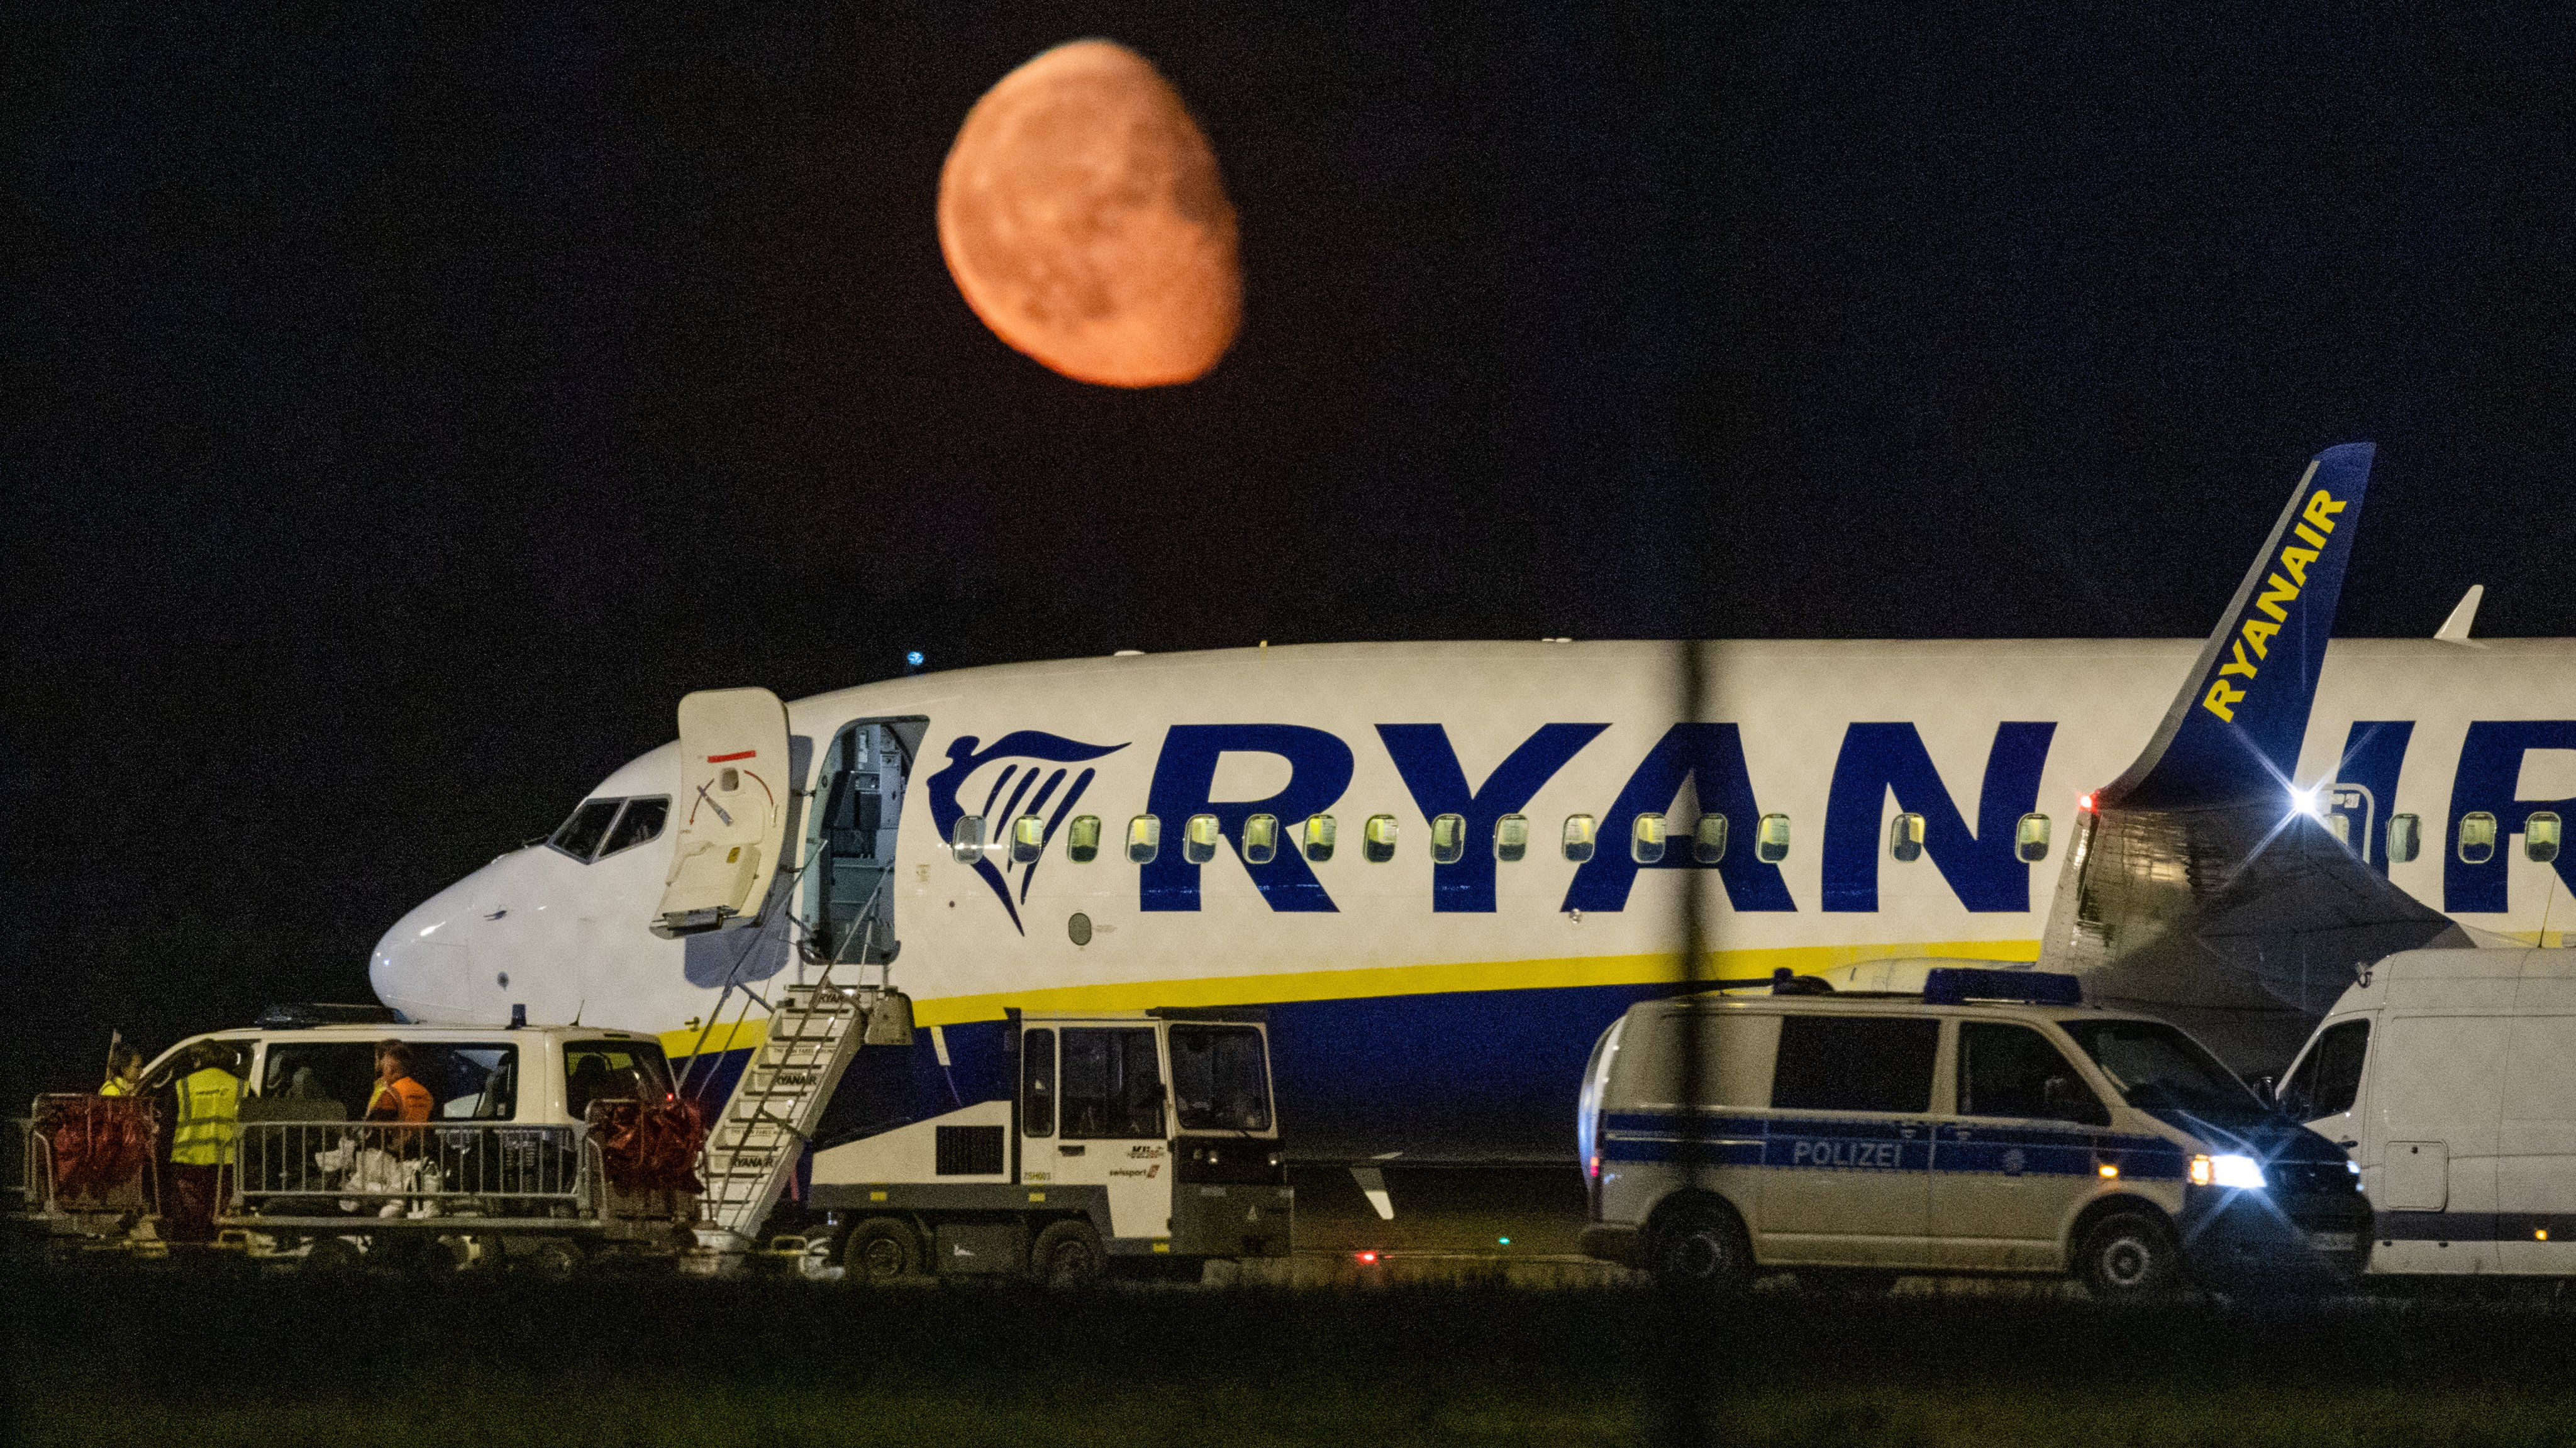 Ryanair plane in unscheduled stop at Berlin airport